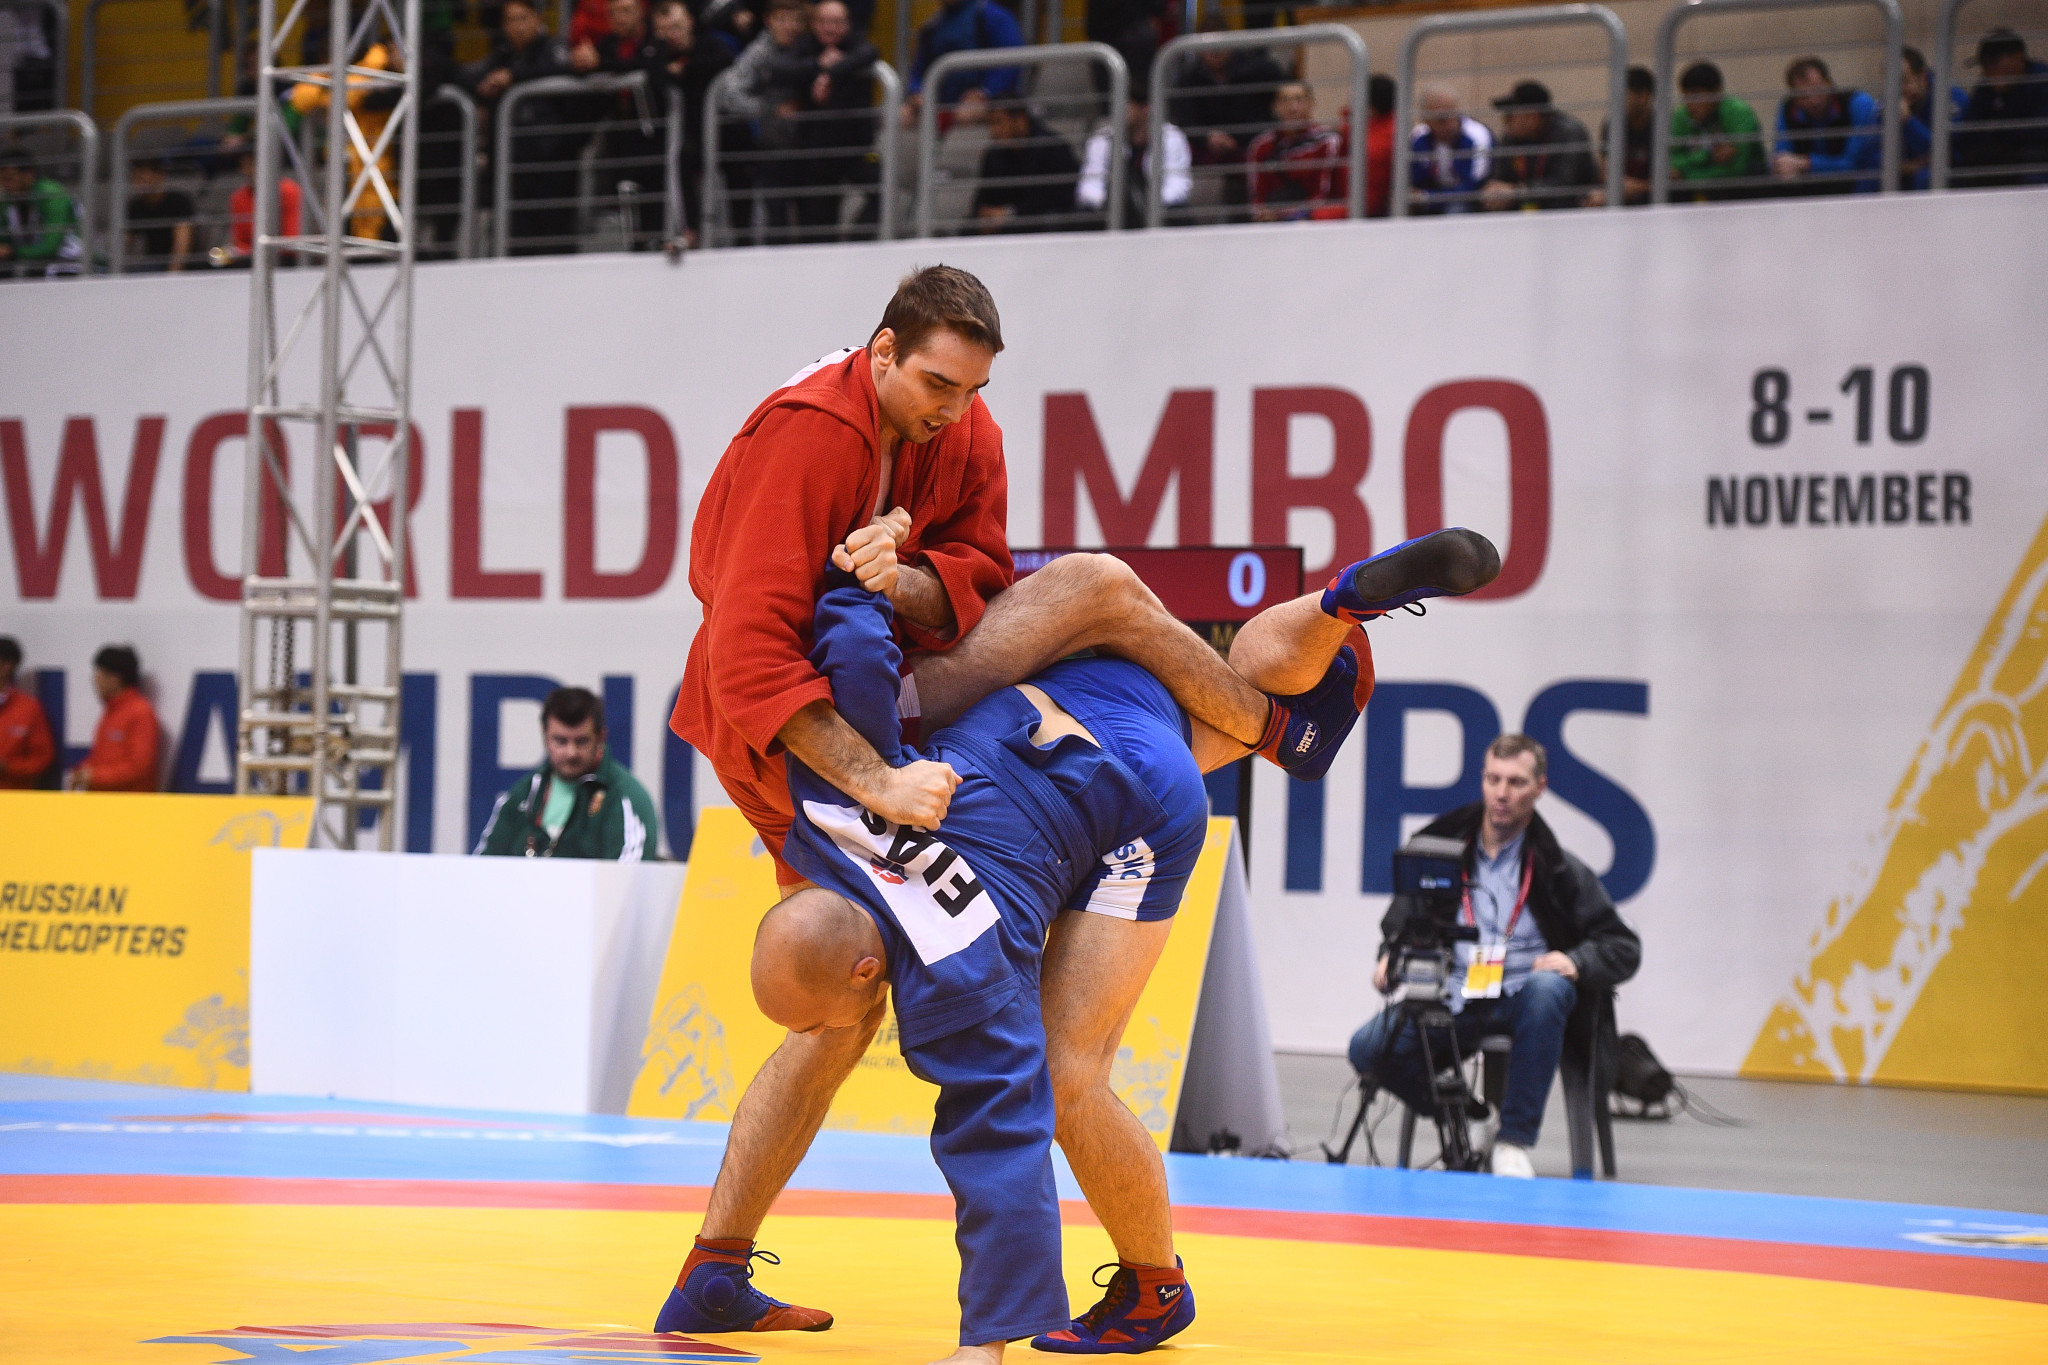 FIAS World Sambo Championships: Day two of competition